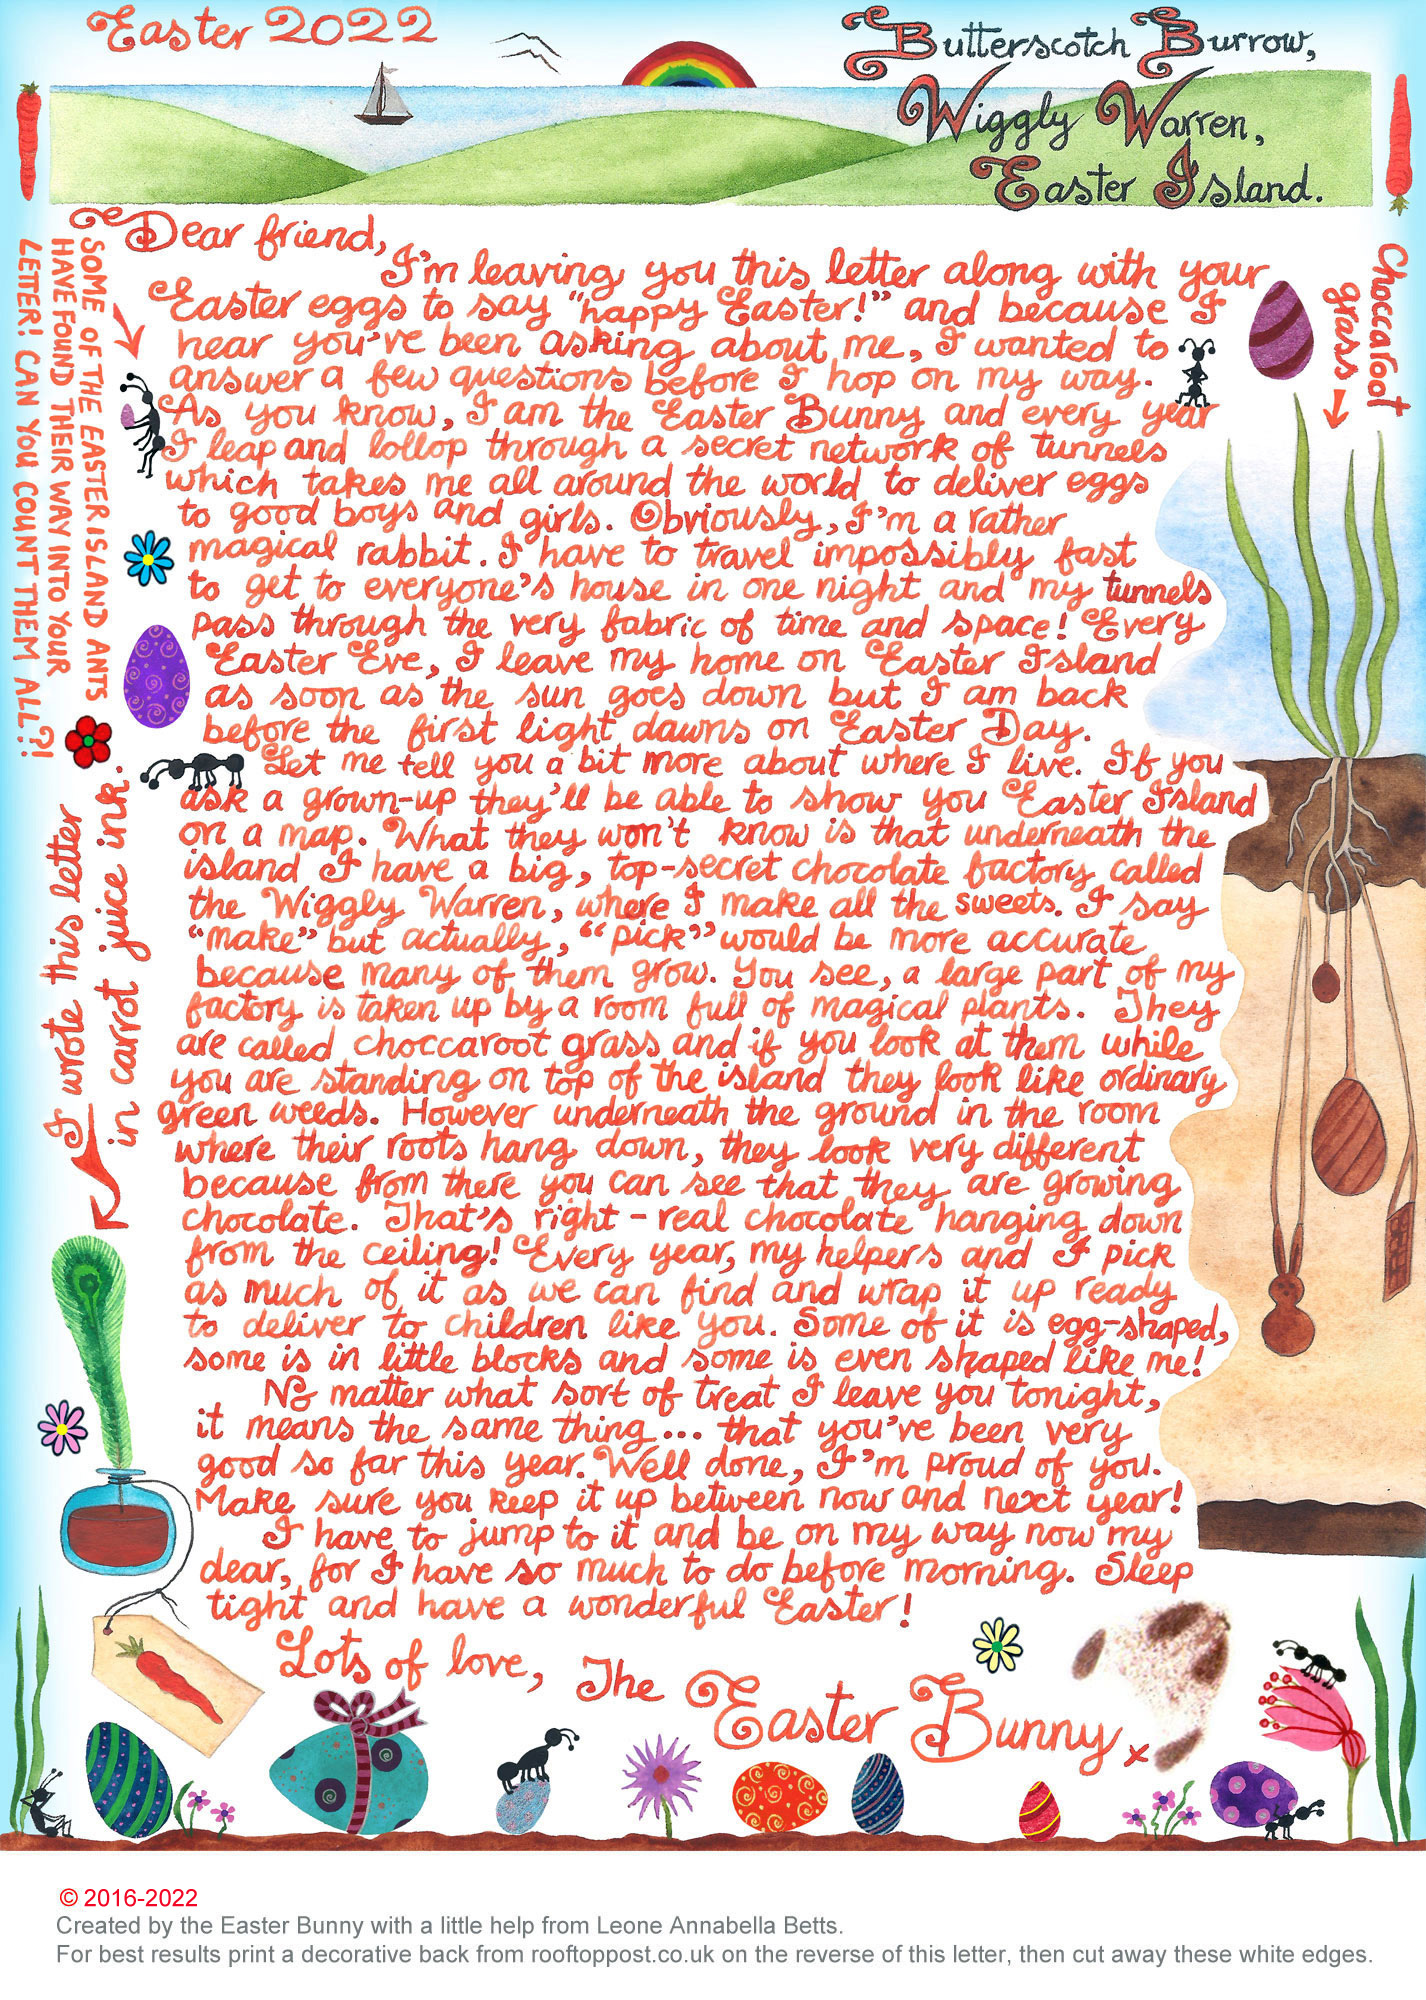 Easter Bunny Letter: My Secret Chocolate Factory by Leone Annabella Betts